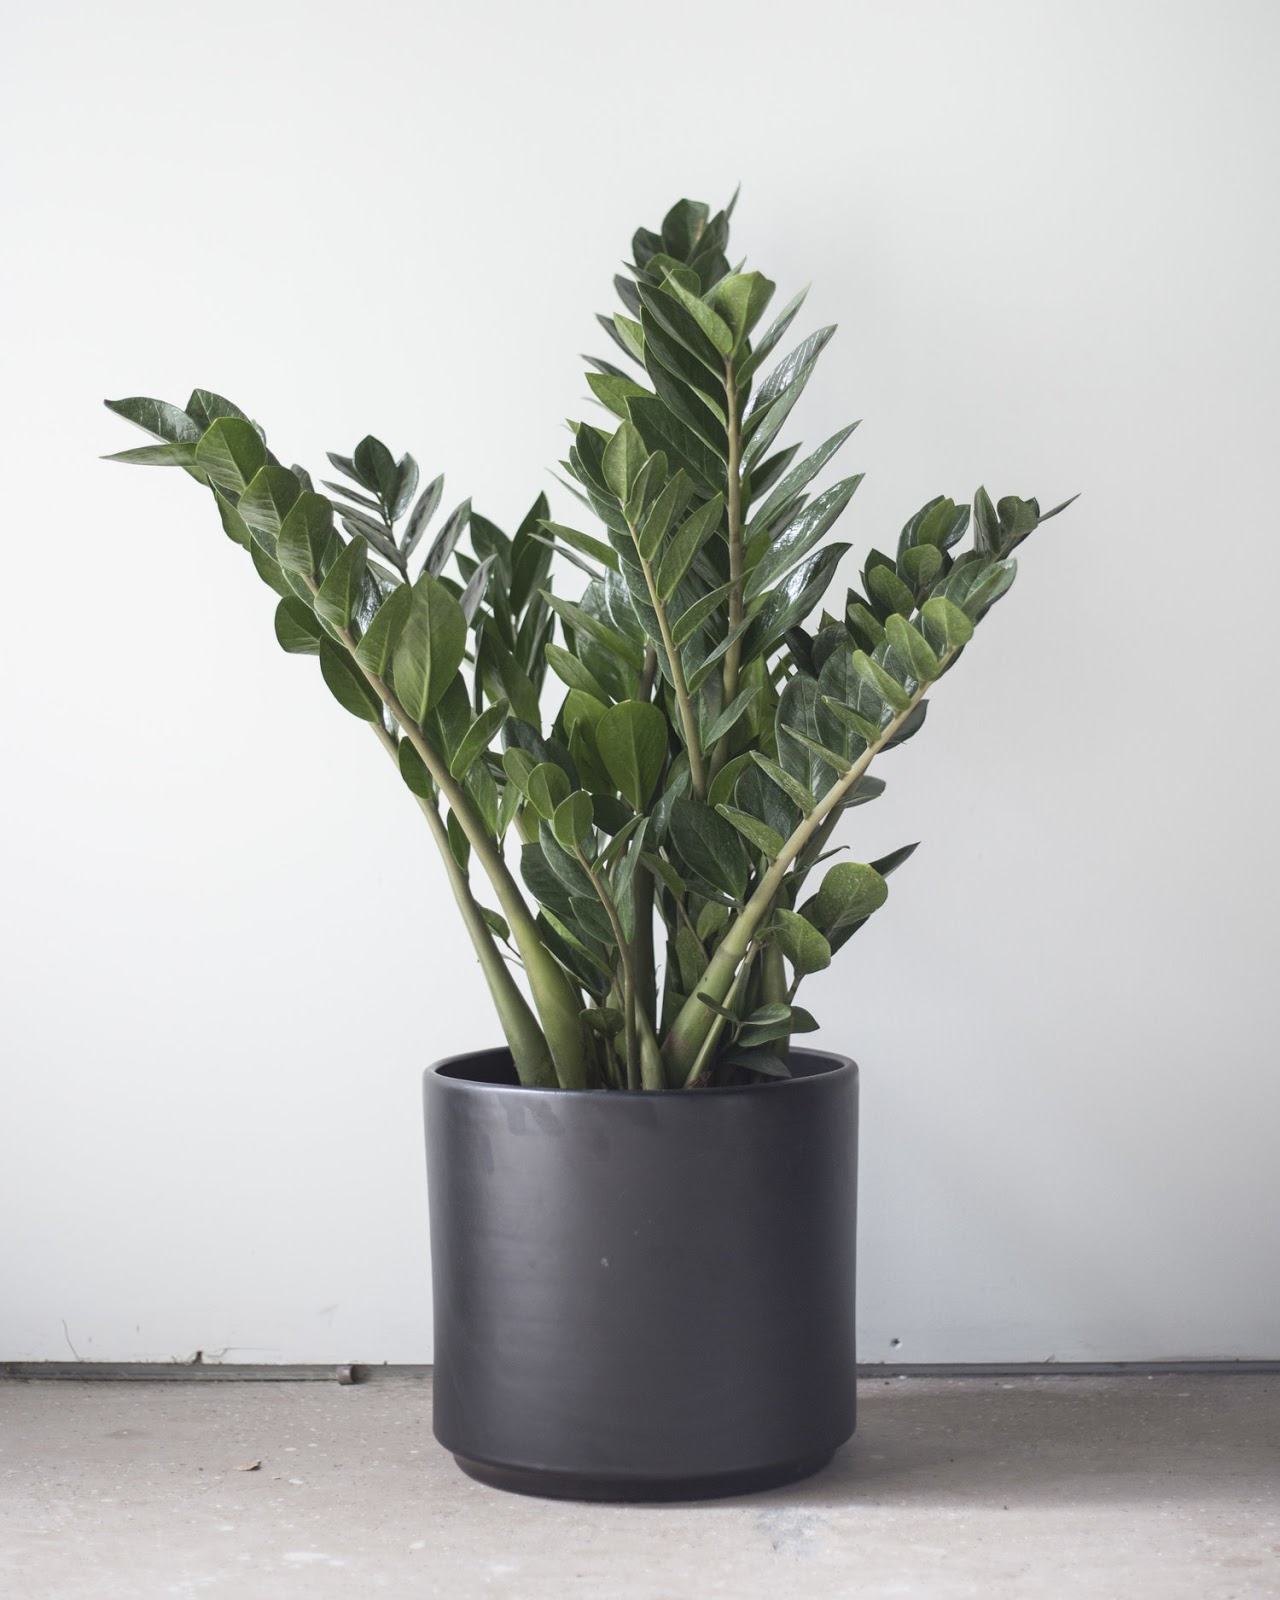 The ZZ Plant (Zamioculcas Zamiifolia) Does Best In Low Light Conditions,  Making It The Perfect Plant For An Office! These Plants Are Often Mistaken  For Fake ...